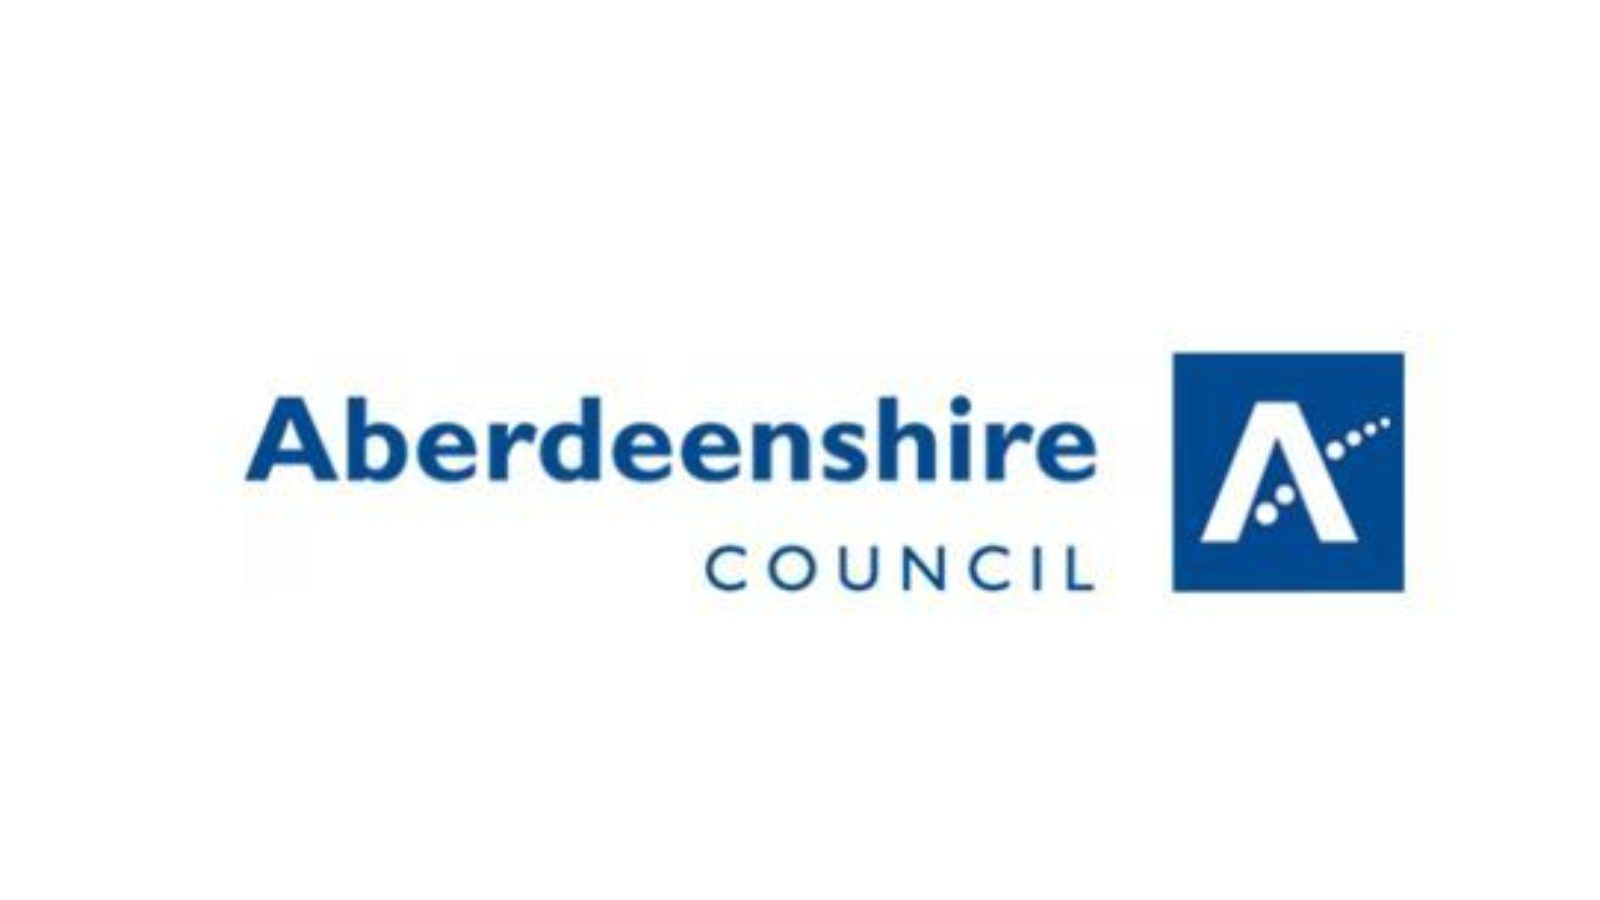 Aberdeenshire Council: Integrating the circular economy into refurbishment and construction